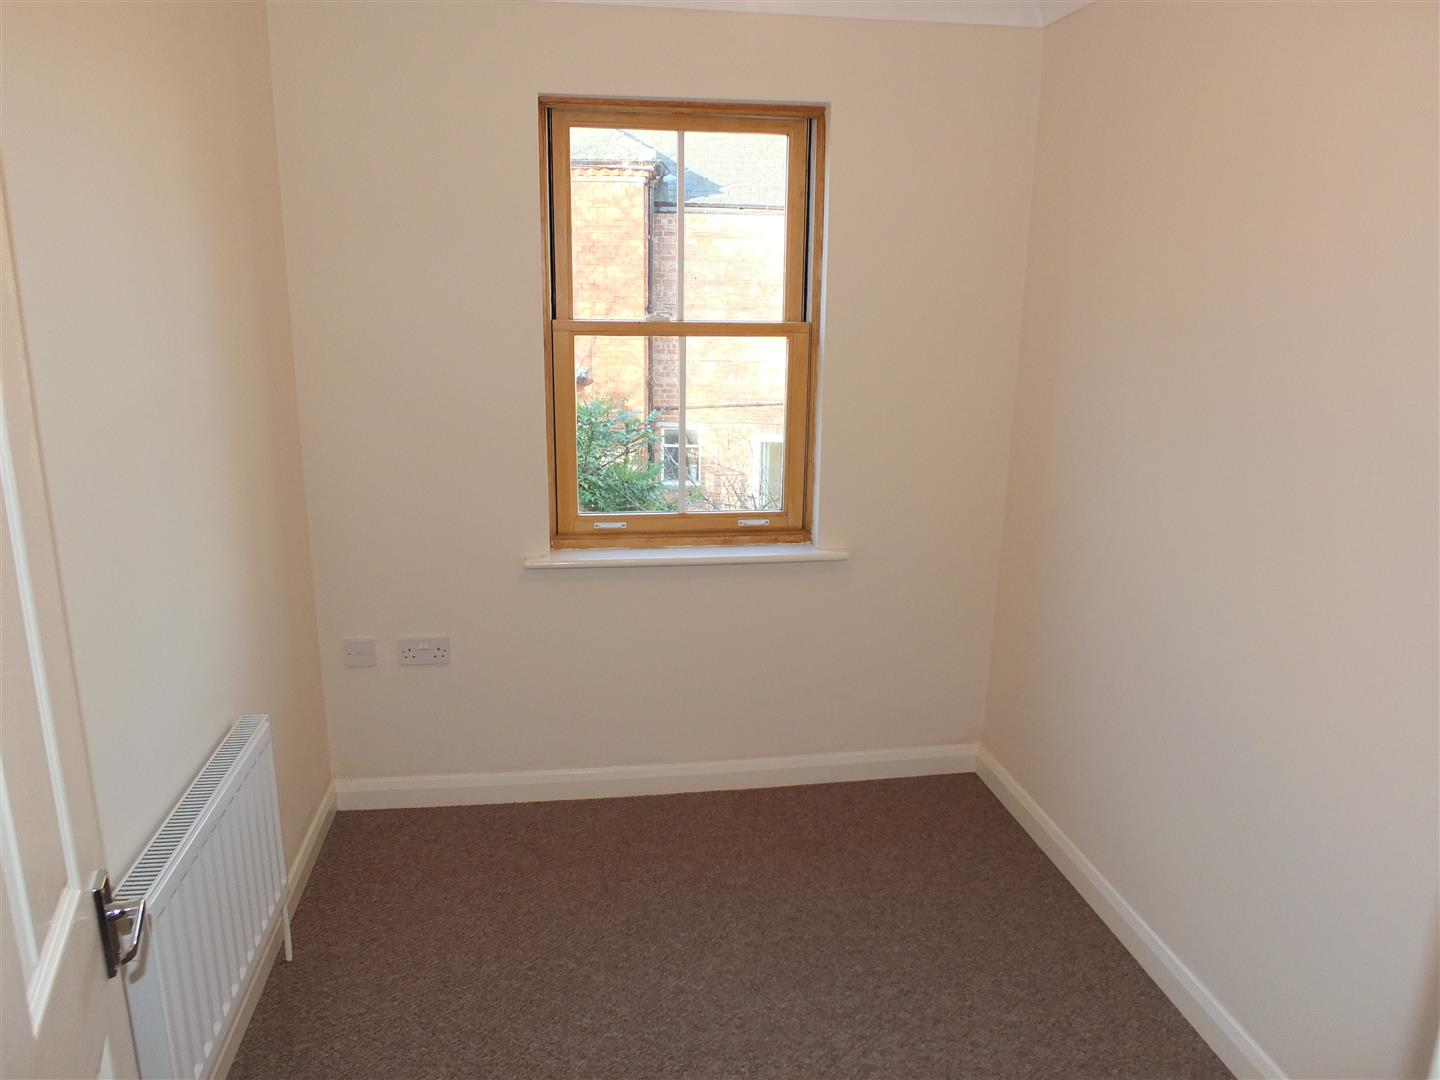 3 bed house to rent in Holbeach Spalding, PE12 7DR  - Property Image 10